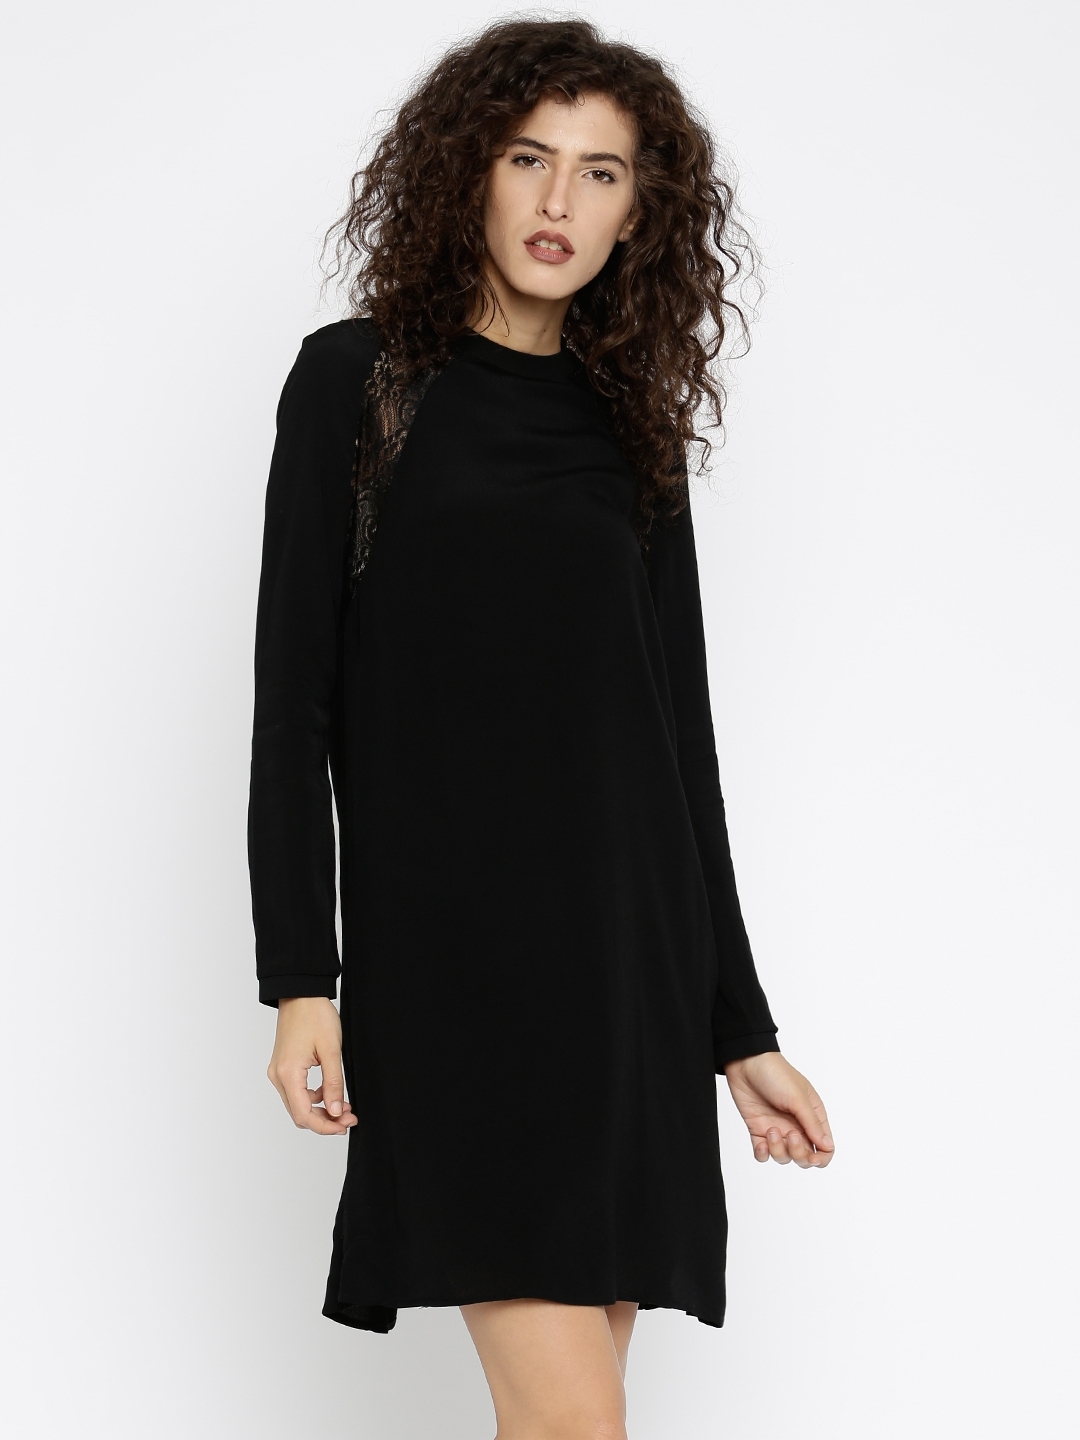 a9bc8d8bc20 Buy Vero Moda Women Black Solid Sheer A Line Dress With Lace Inserts ...